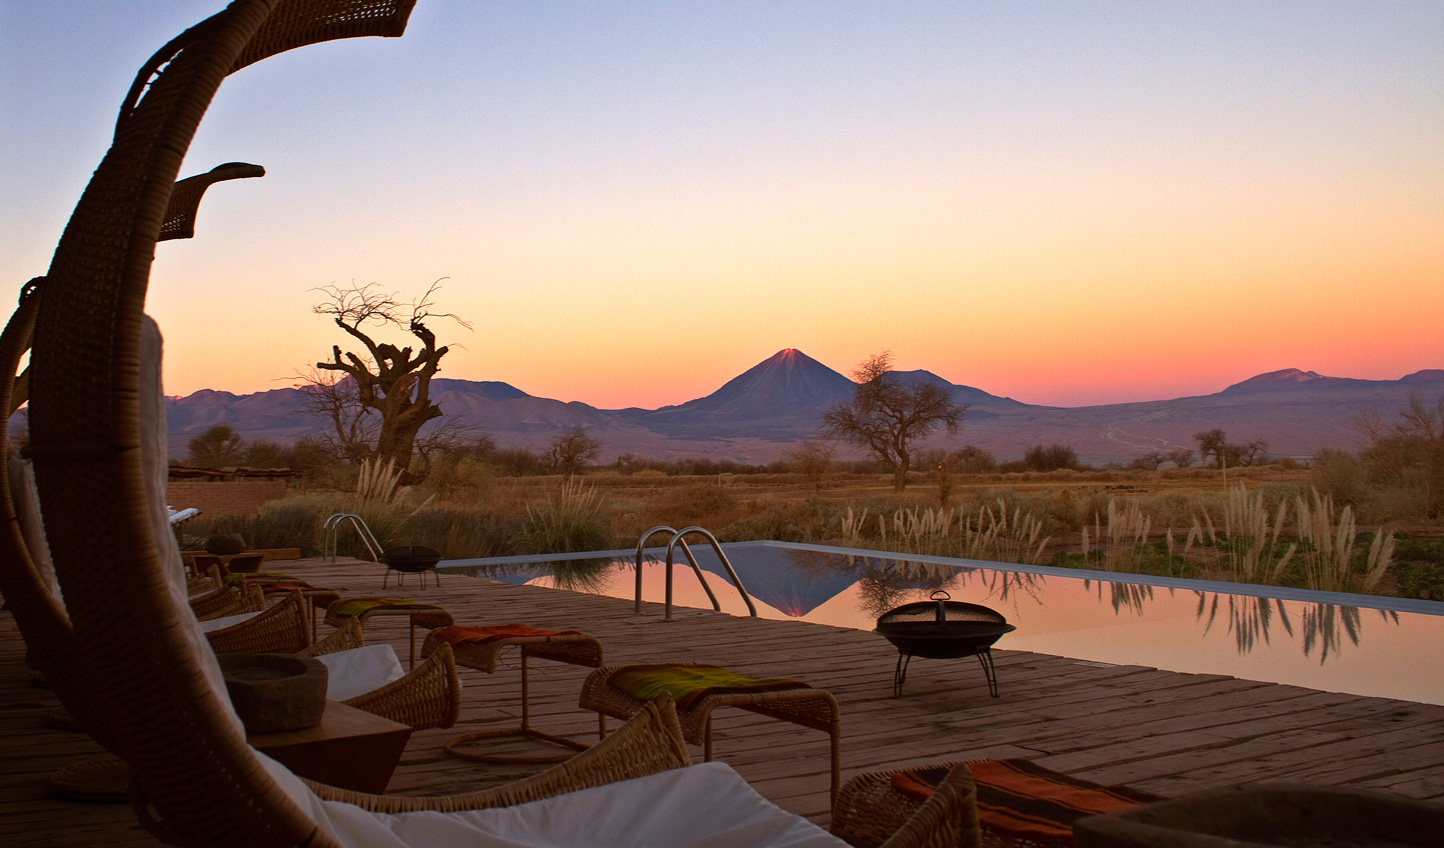 The perfect spot for your evening sundowners